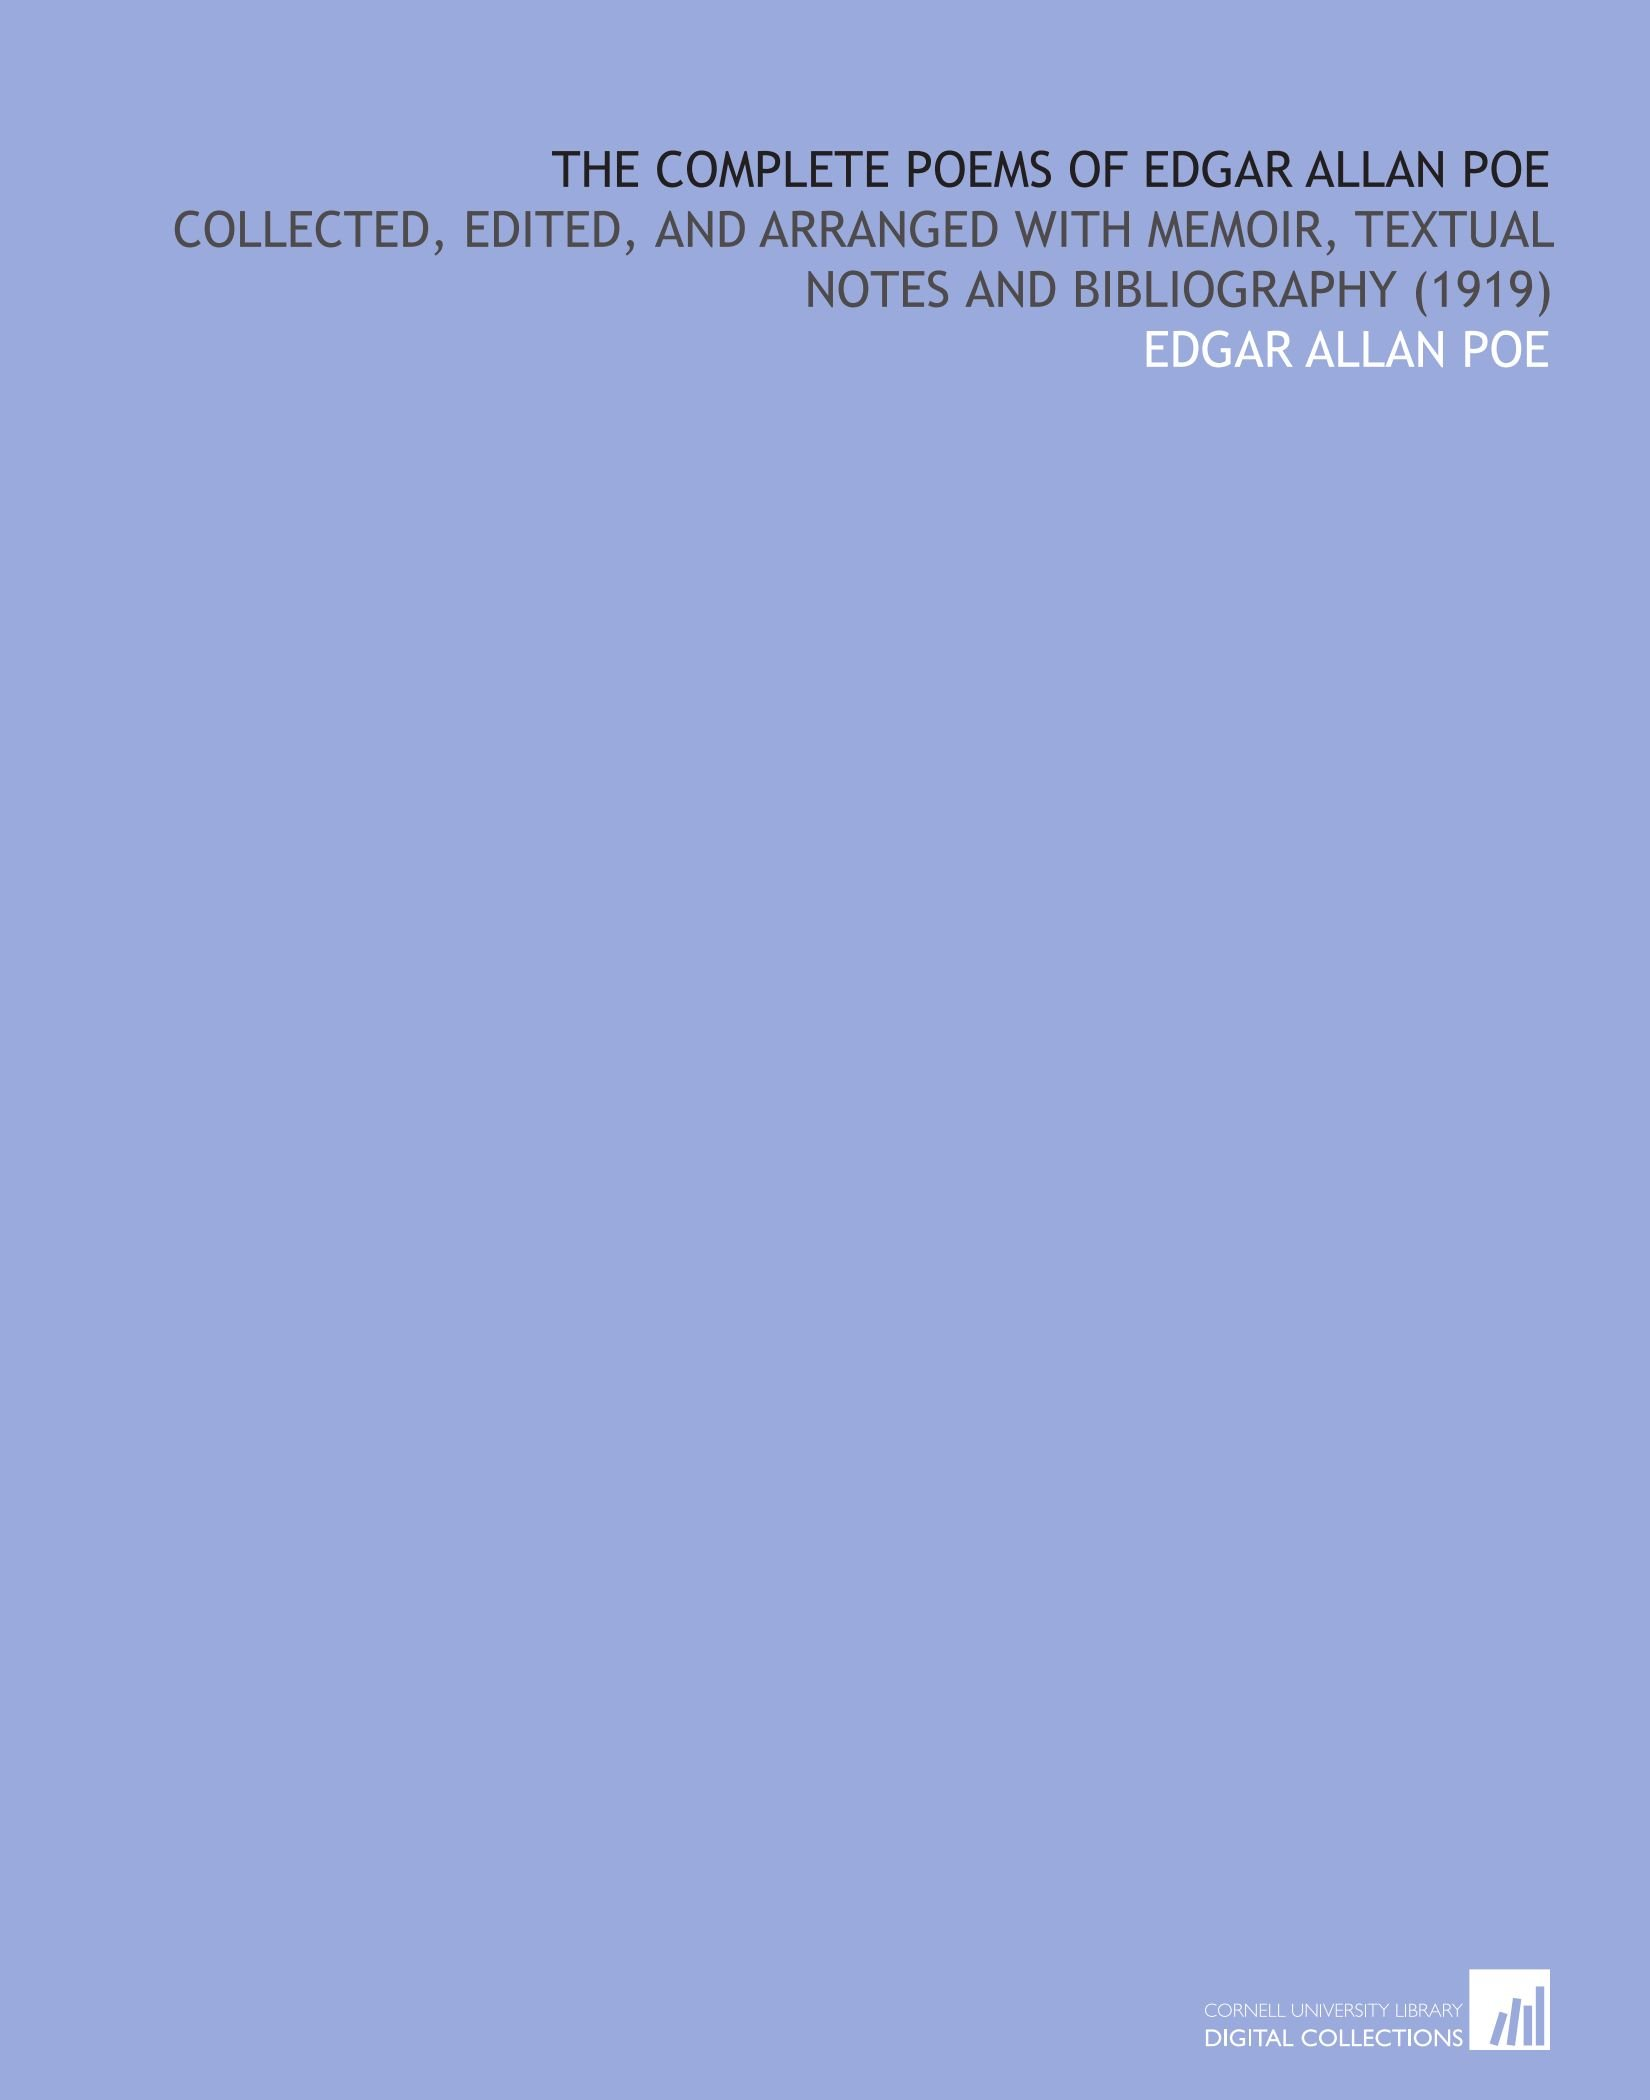 Download The Complete Poems of Edgar Allan Poe: Collected, Edited, and Arranged With Memoir, Textual Notes and Bibliography (1919) PDF